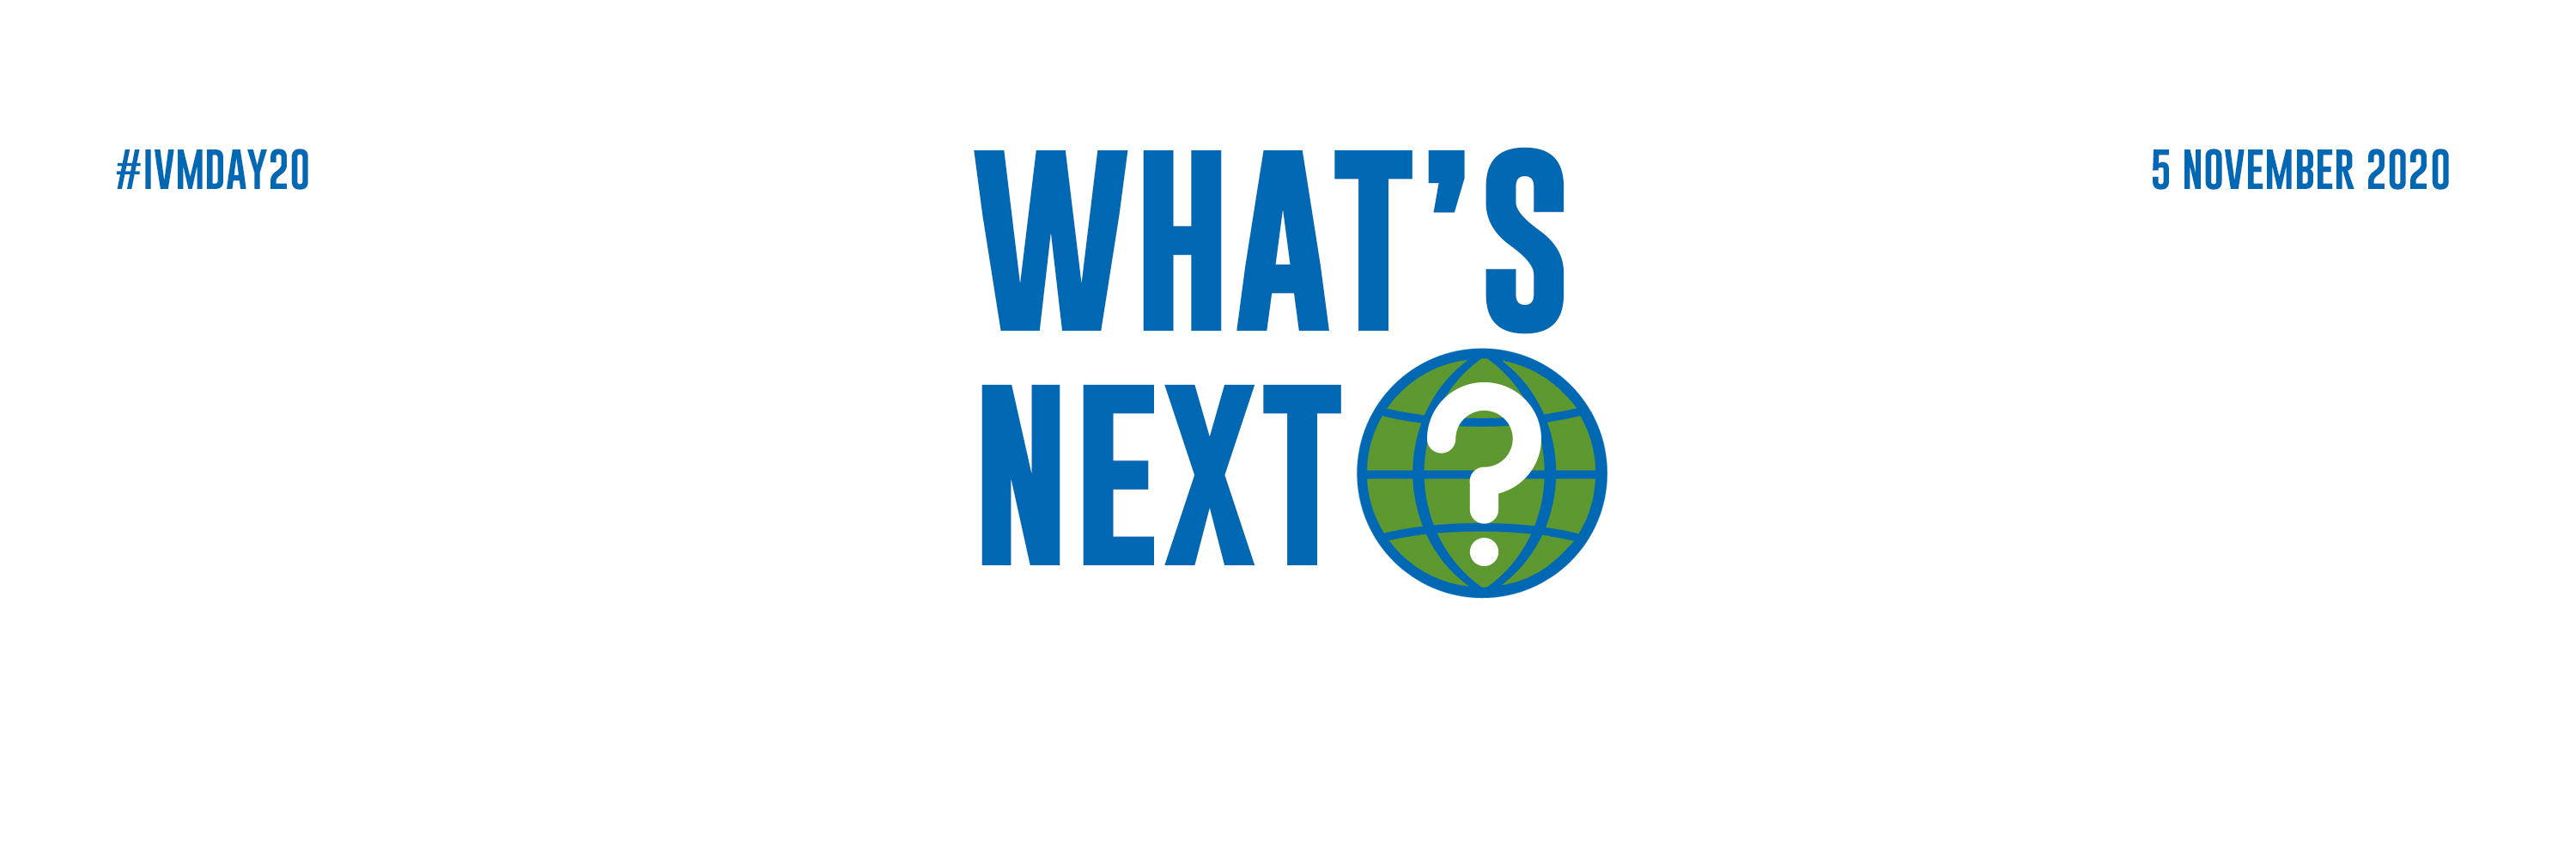 web-banner-1-WhatsNext